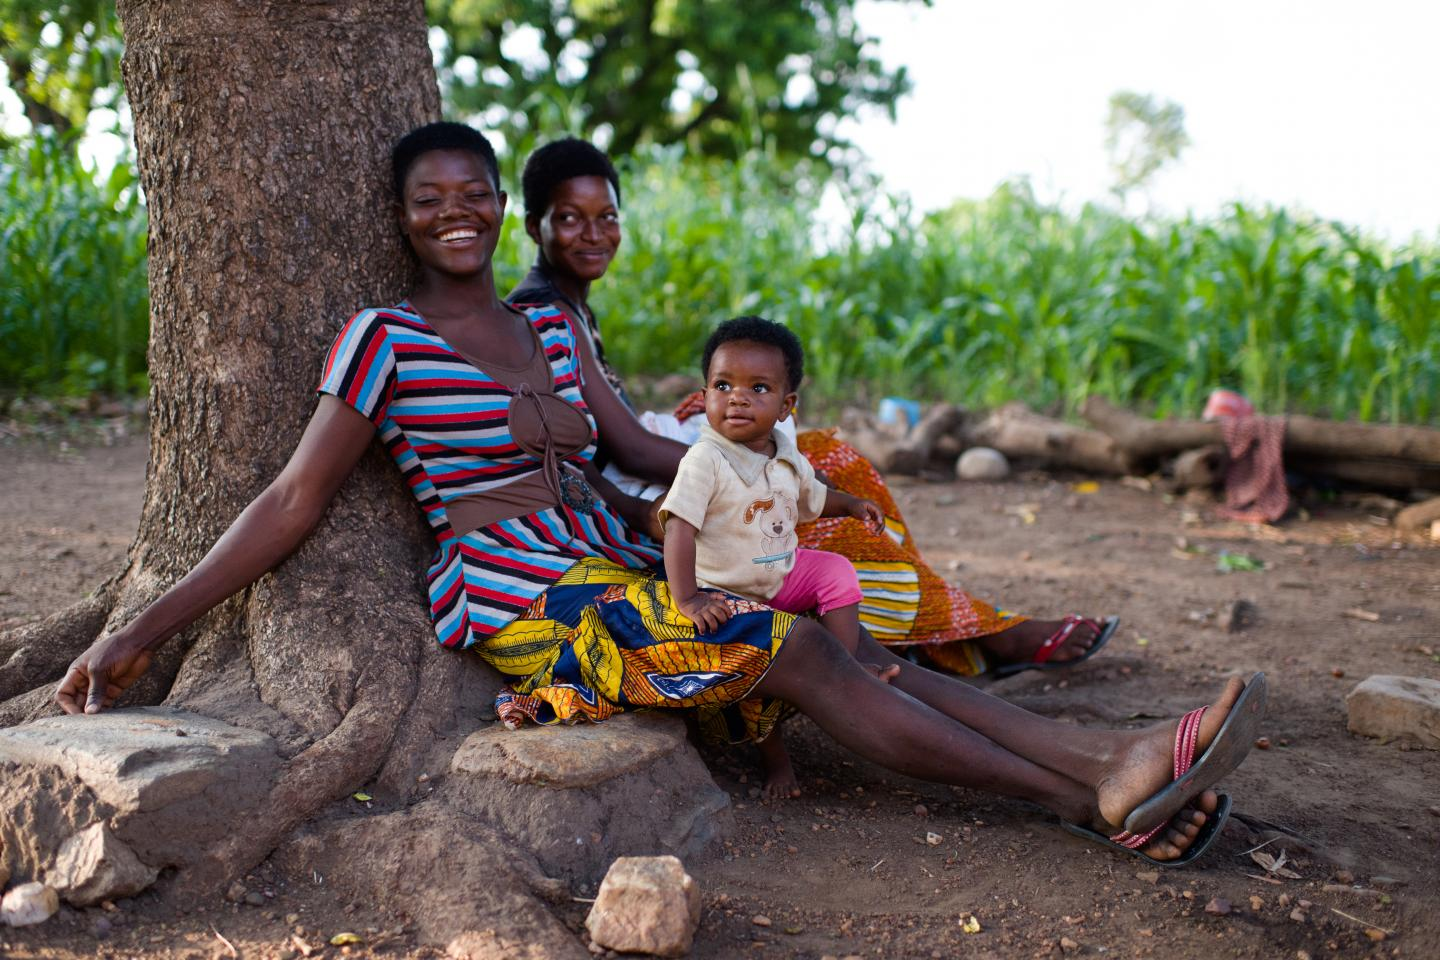 Lardi Asampana and her baby daughter, Bridget Asampana, in Bongo Soe in the Upper East Region of Ghana on 23 July 2015